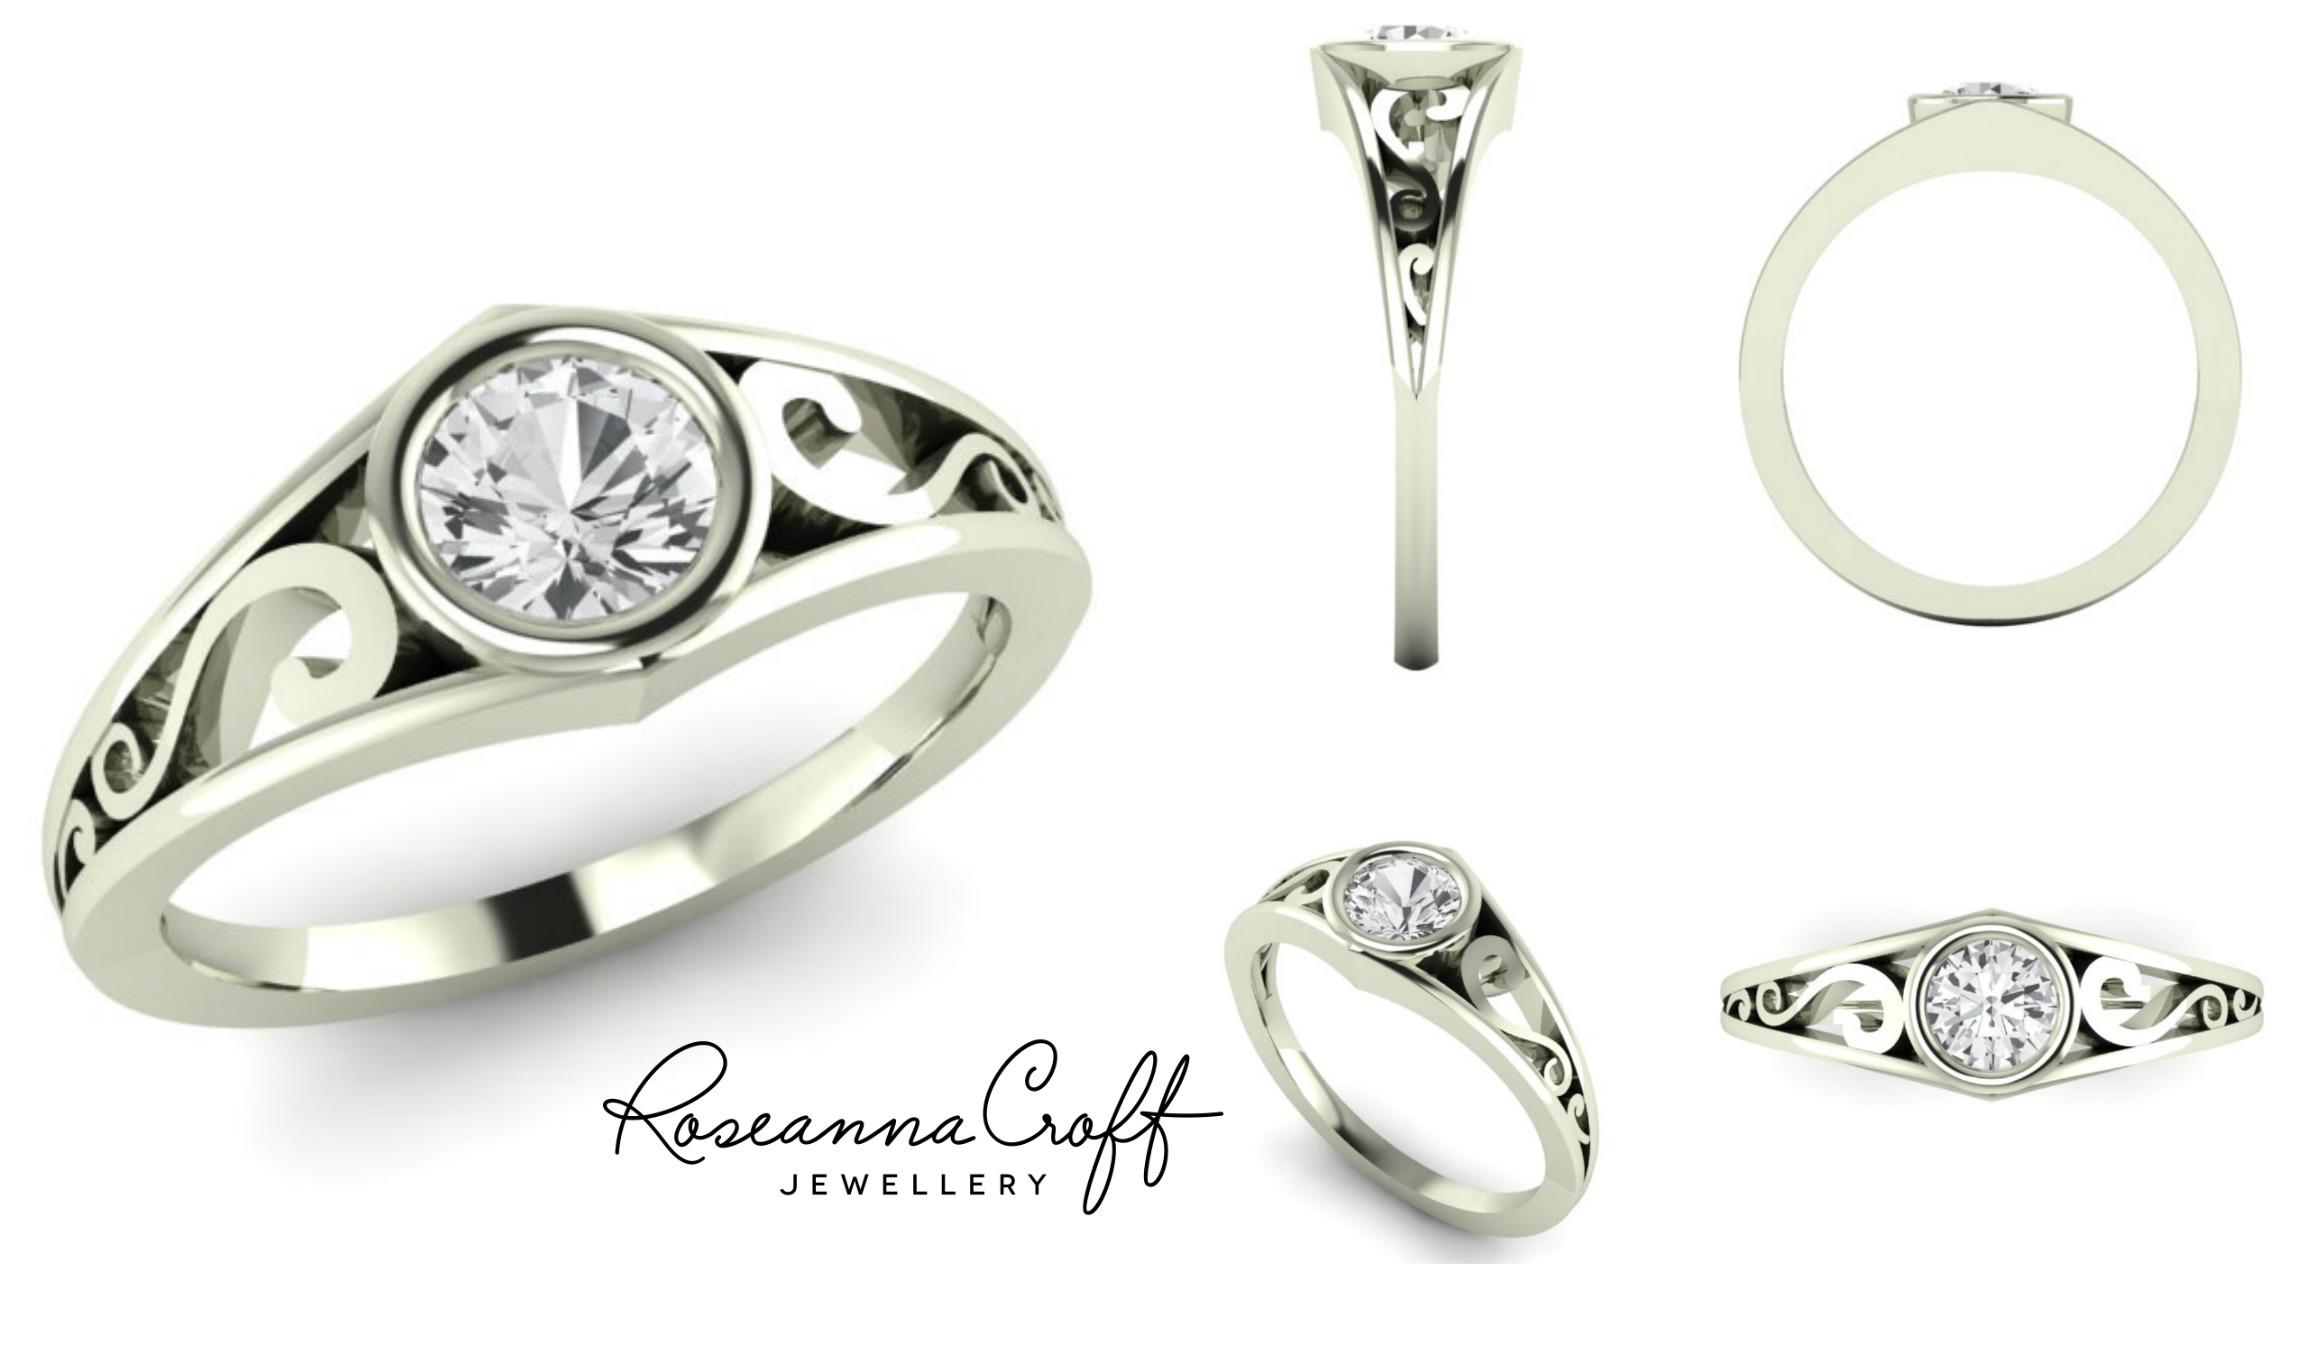 White Sapphire Engagement Ring by Roseanna Croft Jewellery